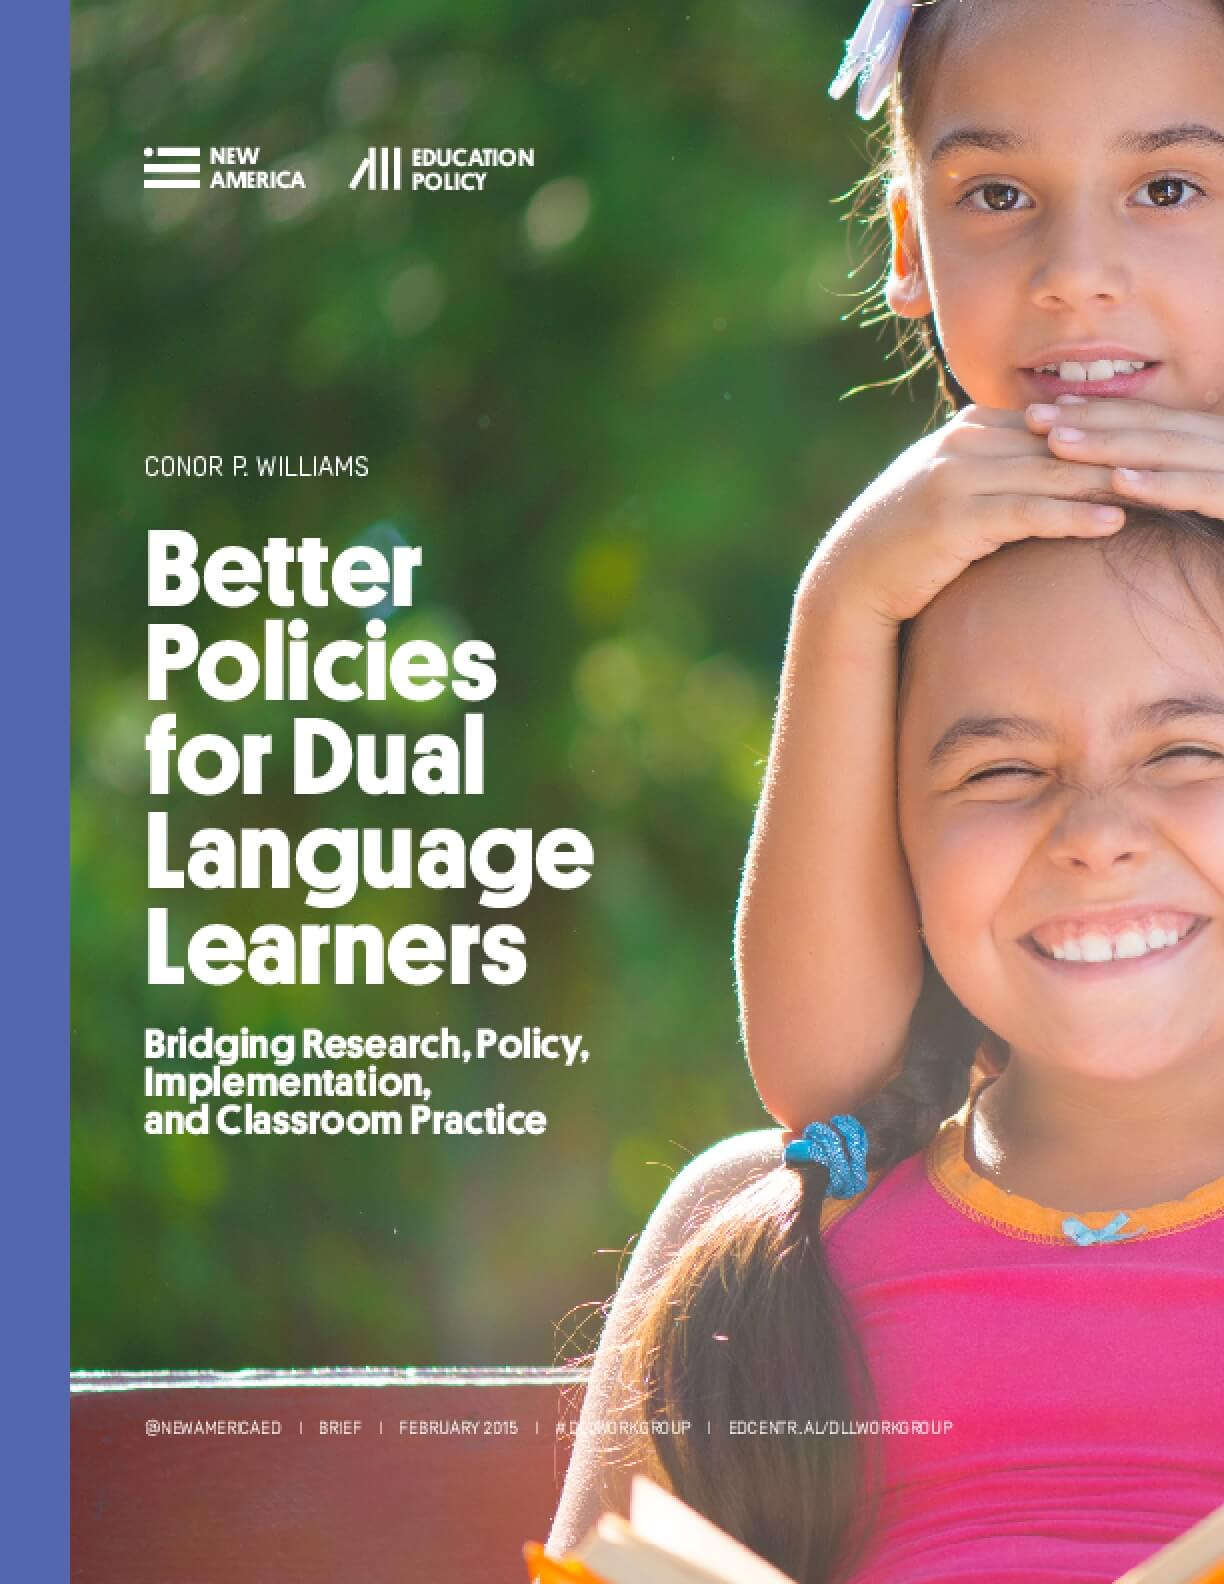 Better Policies for Dual Language Learners: Bridging Research, Policy, Implementation, and Classroom Practice